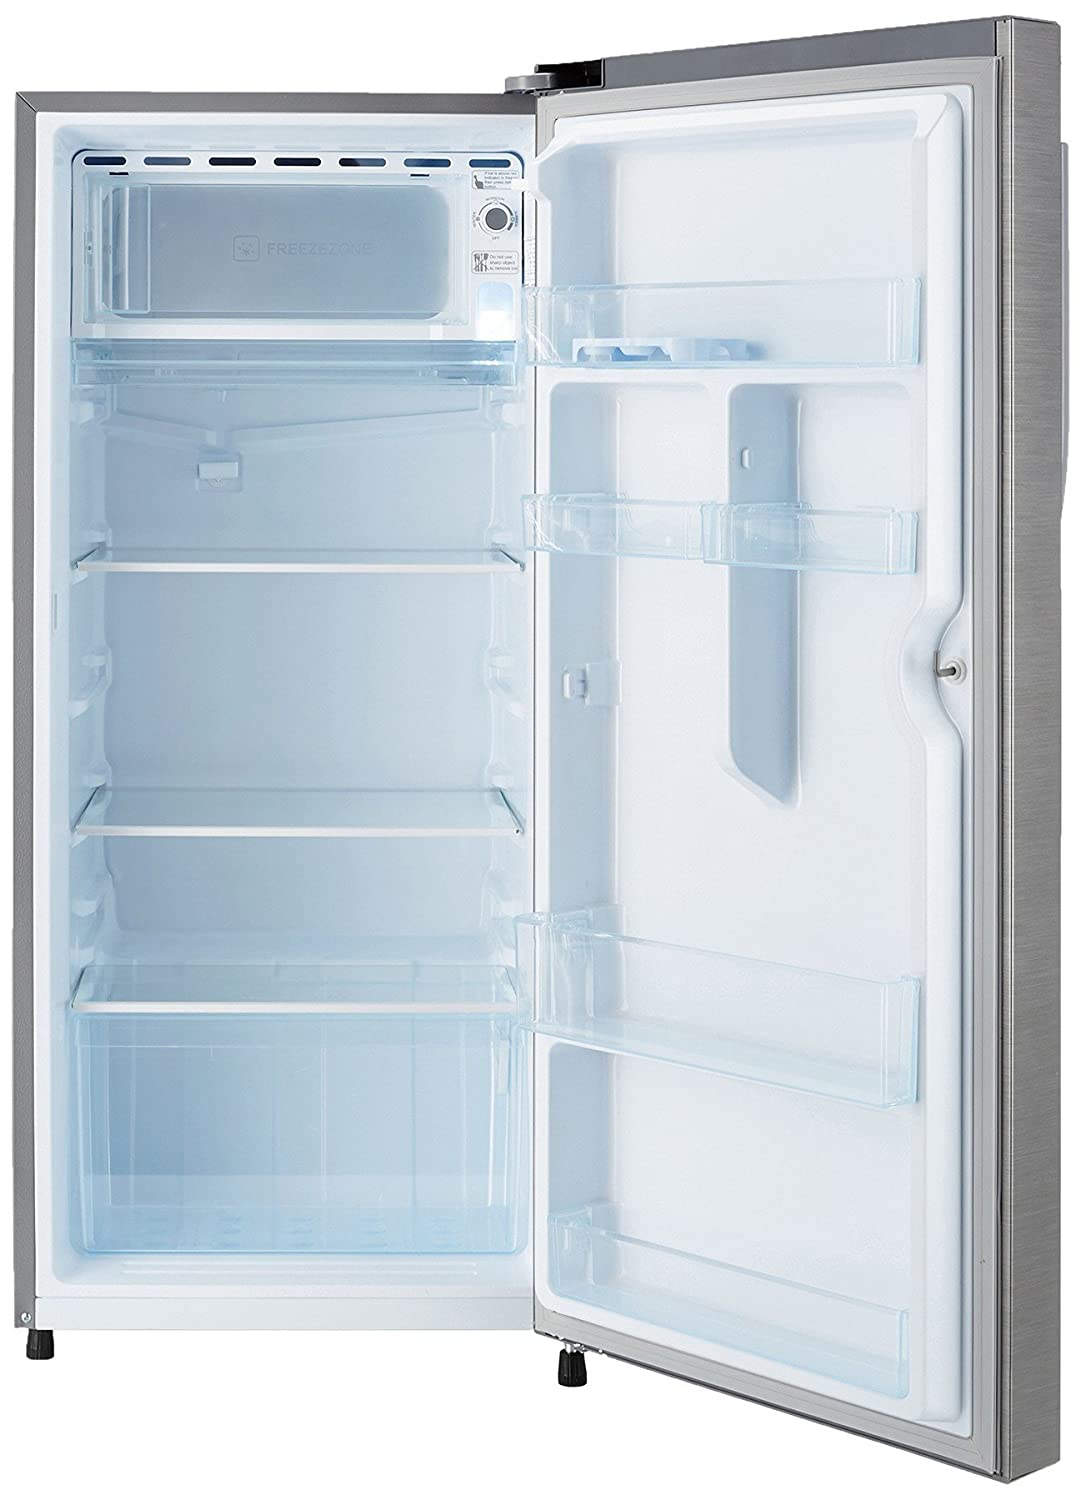 Haier 195 l 4 star direct cool single door refrigerator hrd 1954bs haier 195 l 4 star direct cool single door refrigerator hrd 1954bs ehed 20fdsbrushed silverdazzle steel amazon home kitchen fandeluxe Choice Image